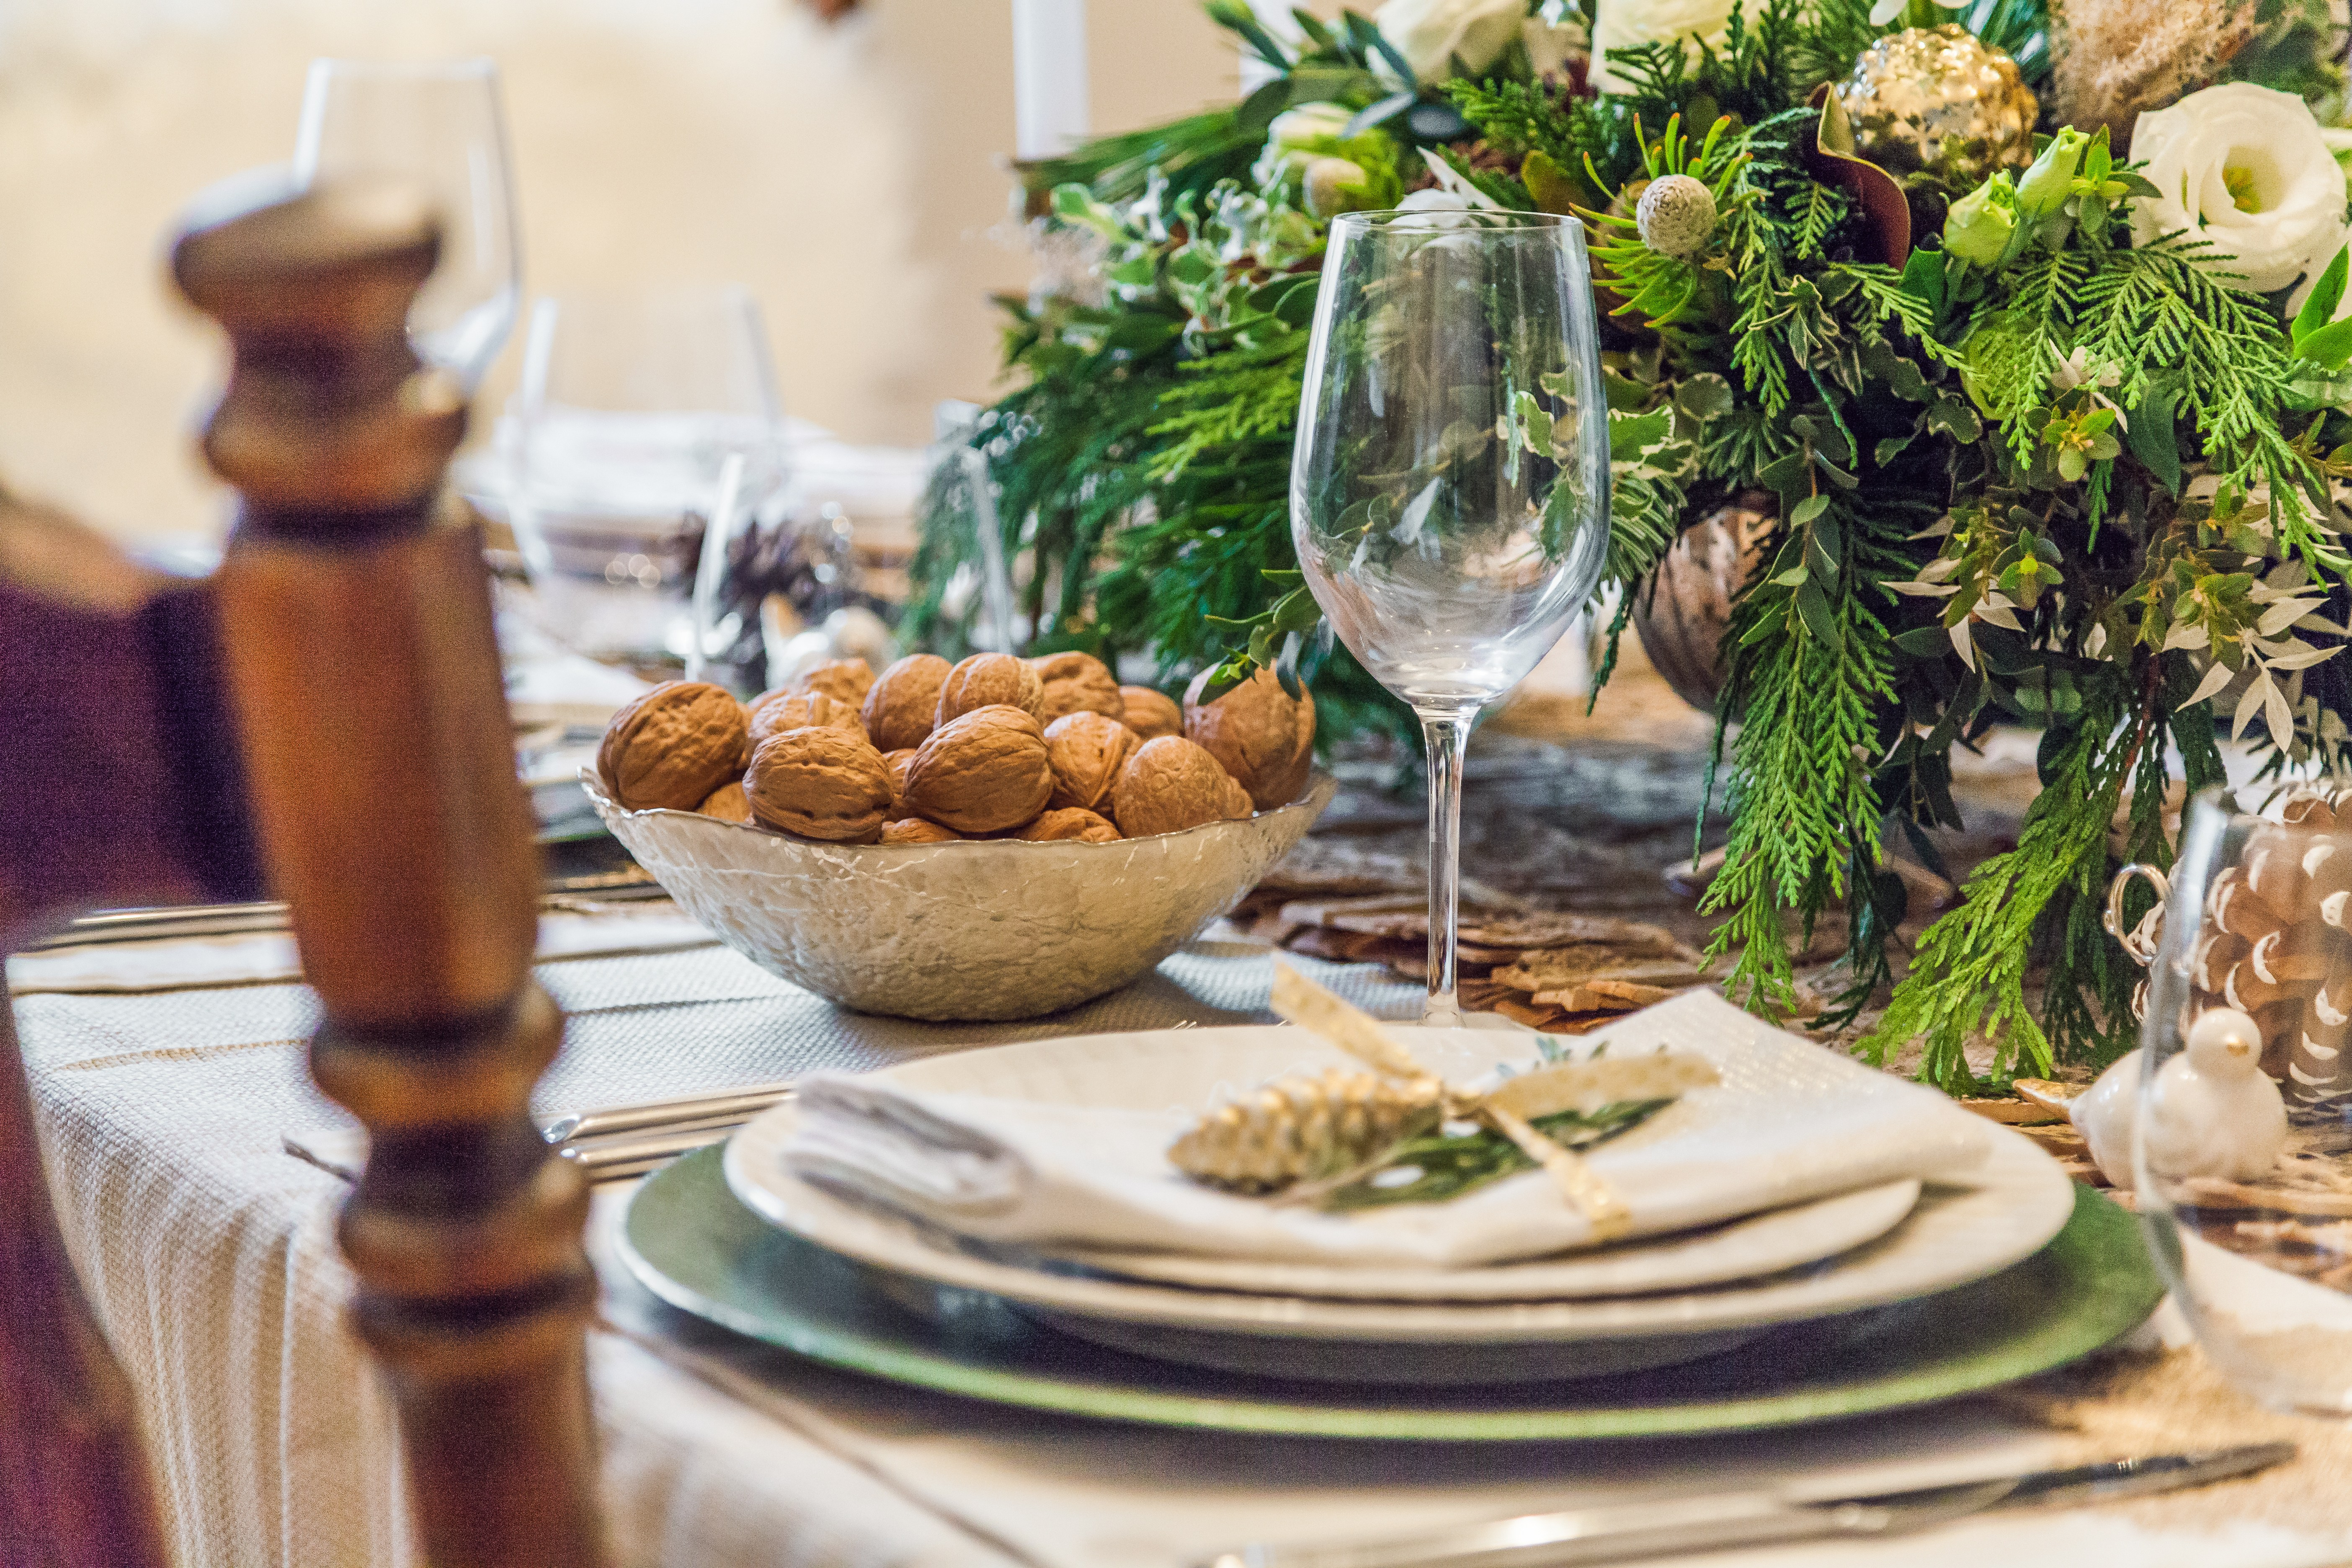 setting swoon worthy holiday tablescape the best home img accent your focus table runner for just hint rustic charm simple stainless steel cutlery helps break warm tones and gold